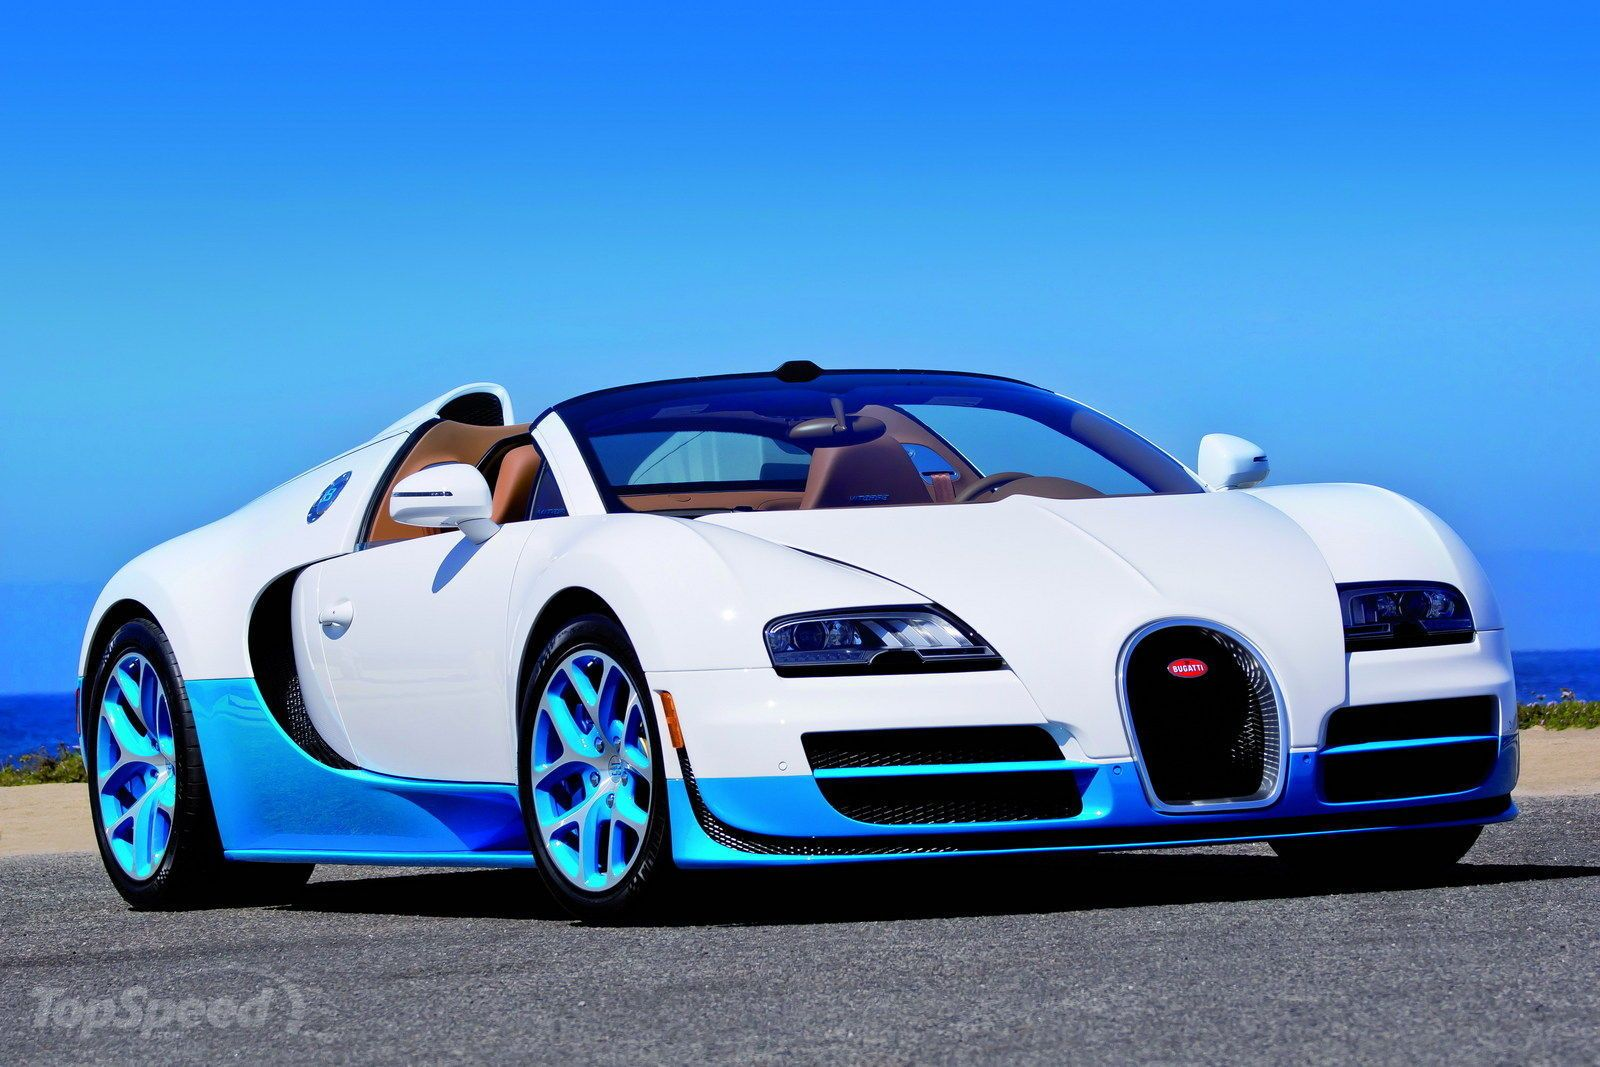 2012 Bugatti Veyron 16 4 Grand Sport Vitesse Bianco And New Light Blue Pictures Photos Wallpapers Top Speed Bugatti Veyron 16 Bugatti Veyron Grand Sport Vitesse Bugatti Veyron